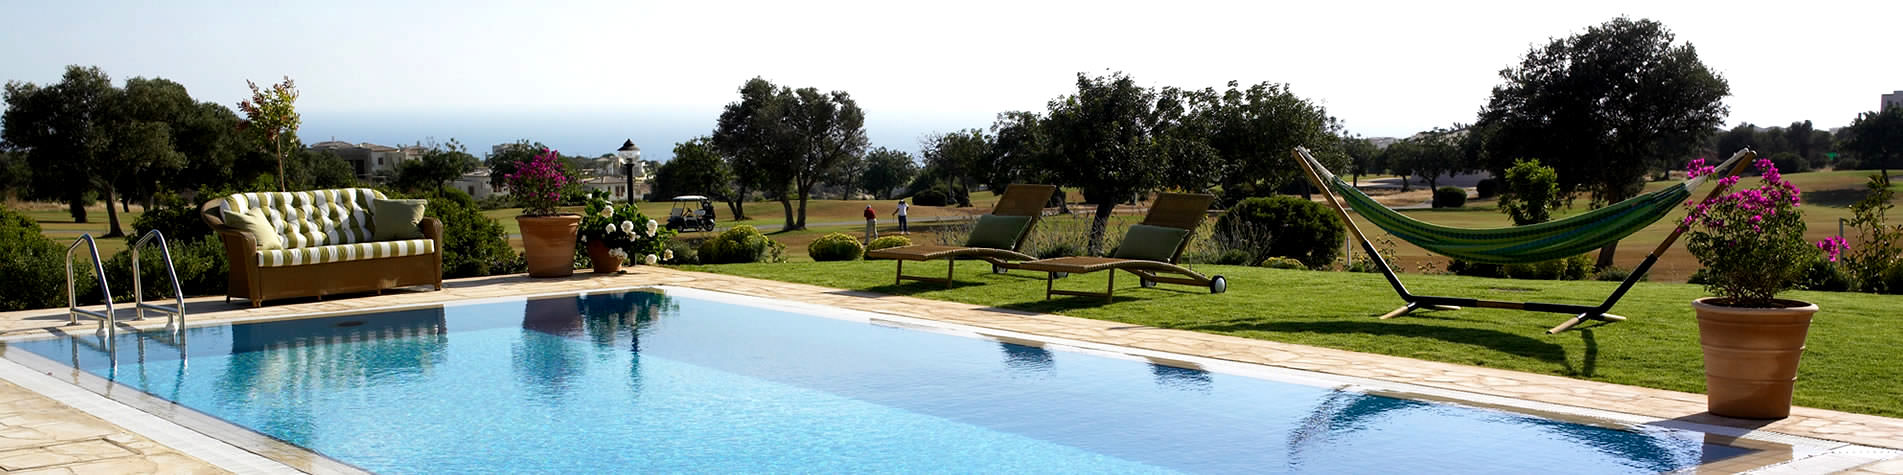 Self-Catering Holidays with Cyplon Holidays